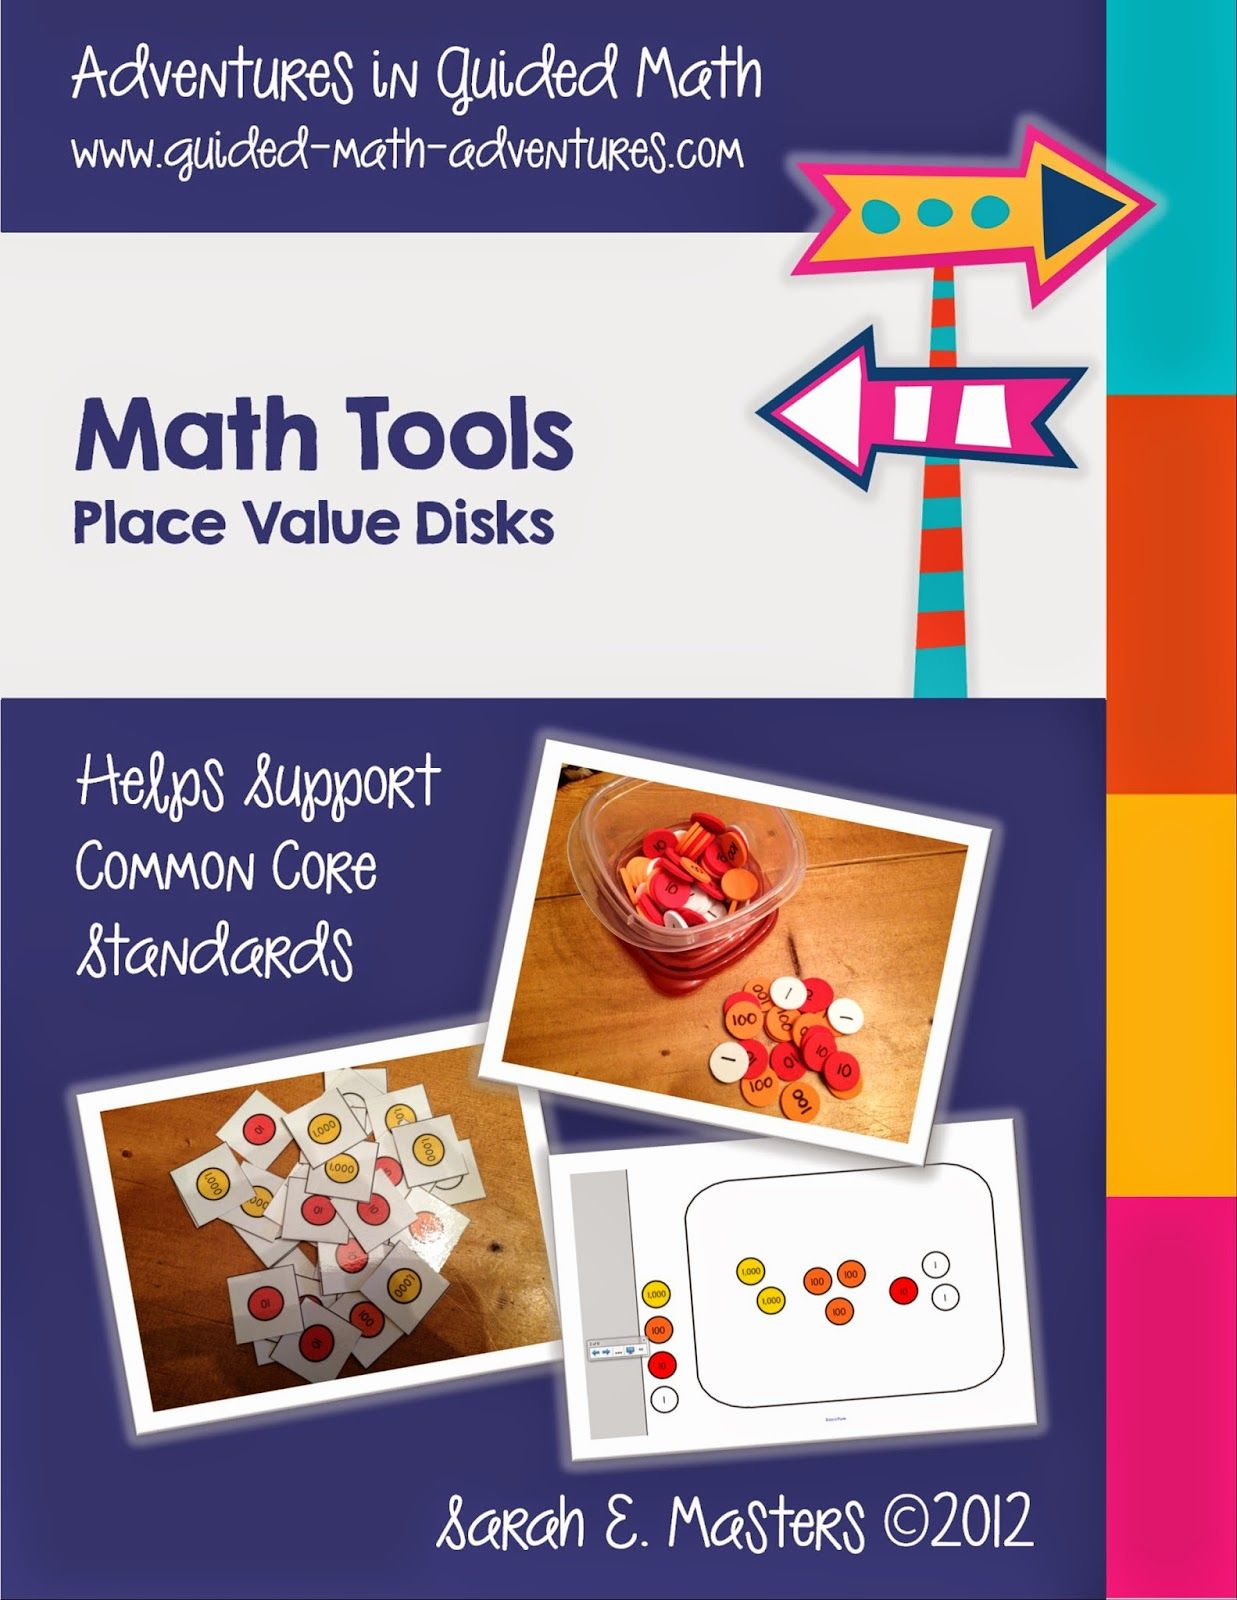 Adventures In Guided Math Math Tools